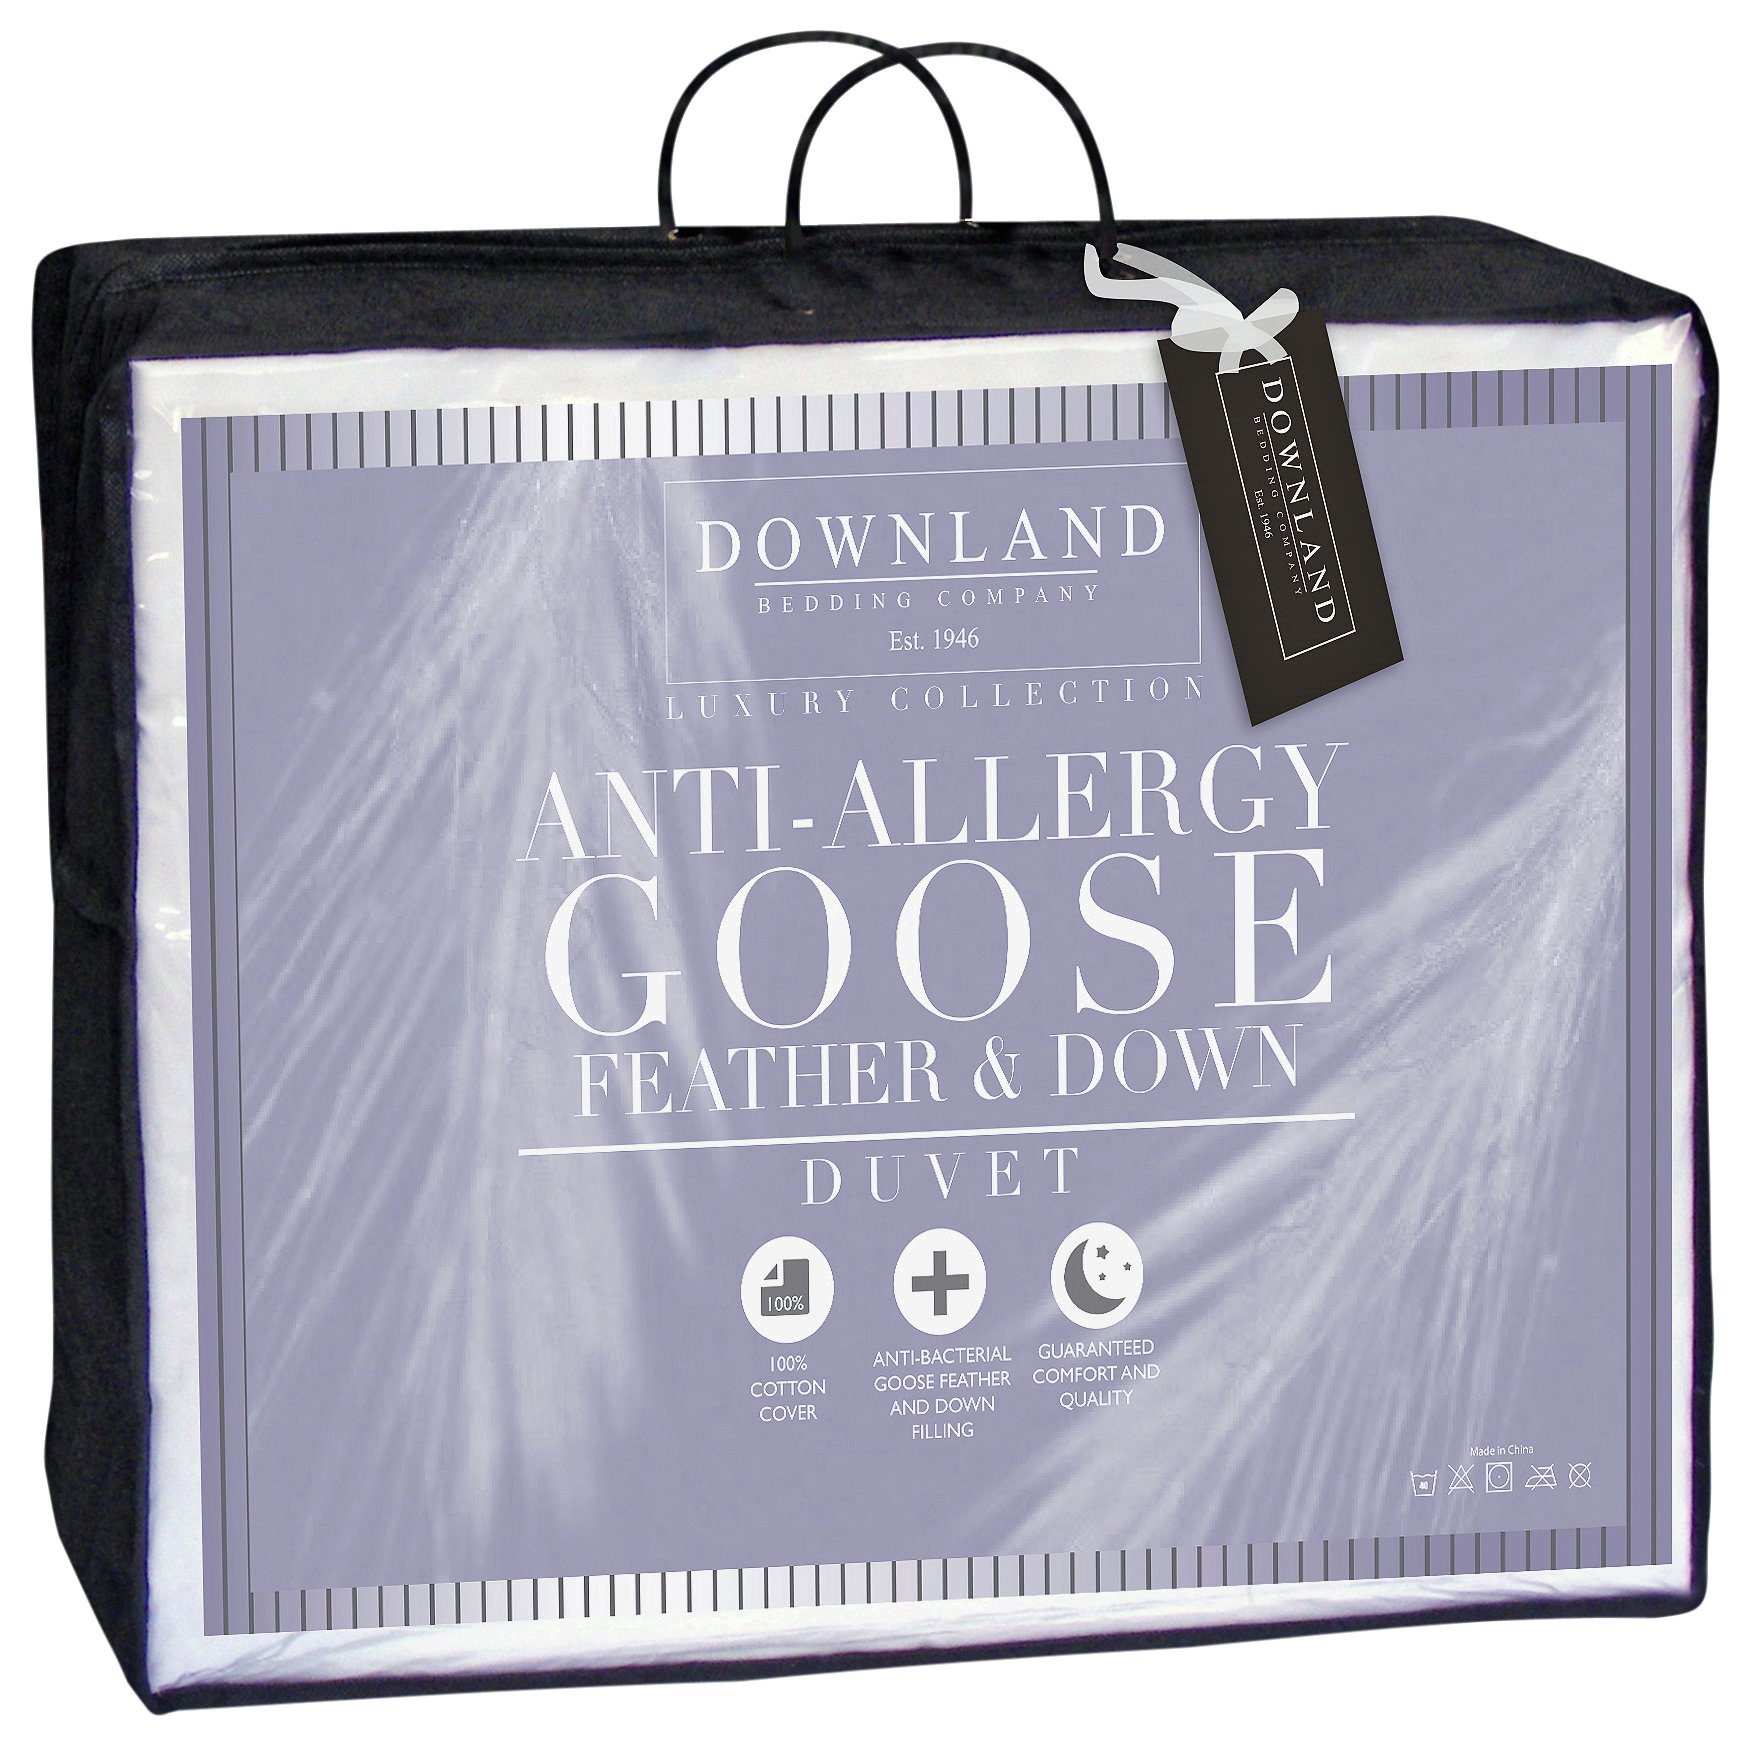 Downland 15 Tog Goose, Feather and Down Duvet - Superking